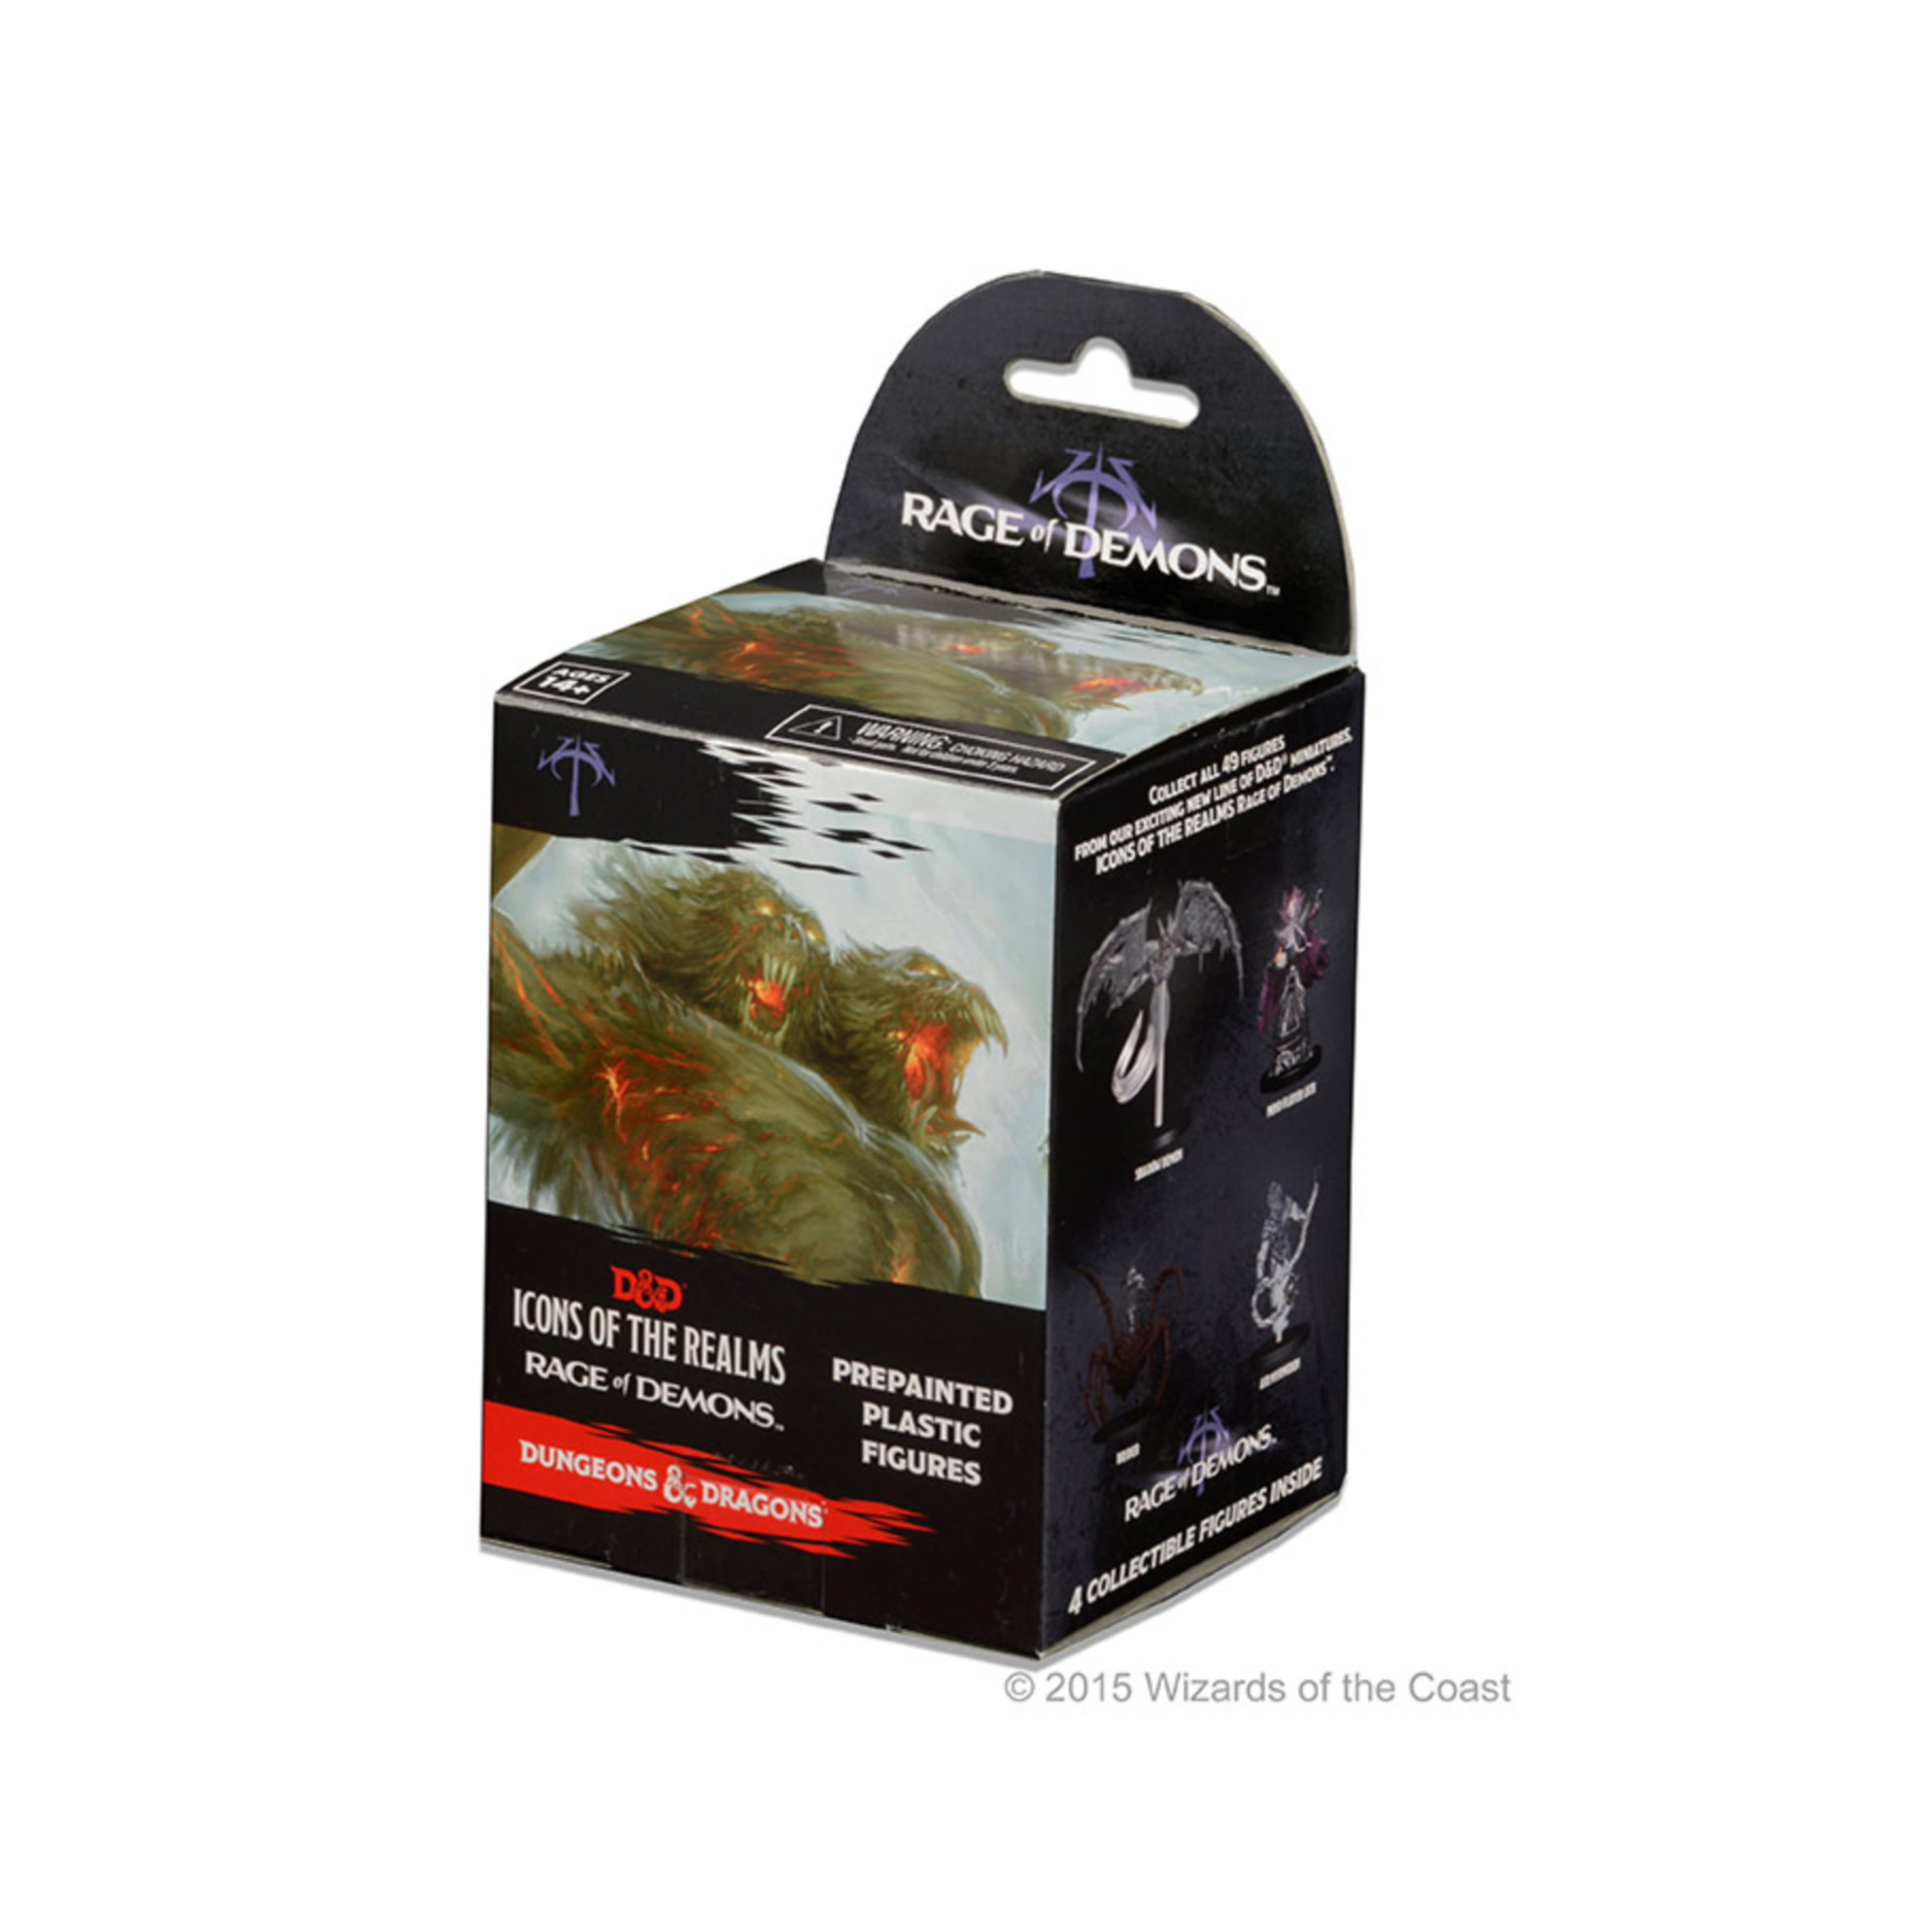 Wizkids Games D&D Fantasy Miniatures: Icons of the Realms Set 3 Rage of Demons Standard Booster